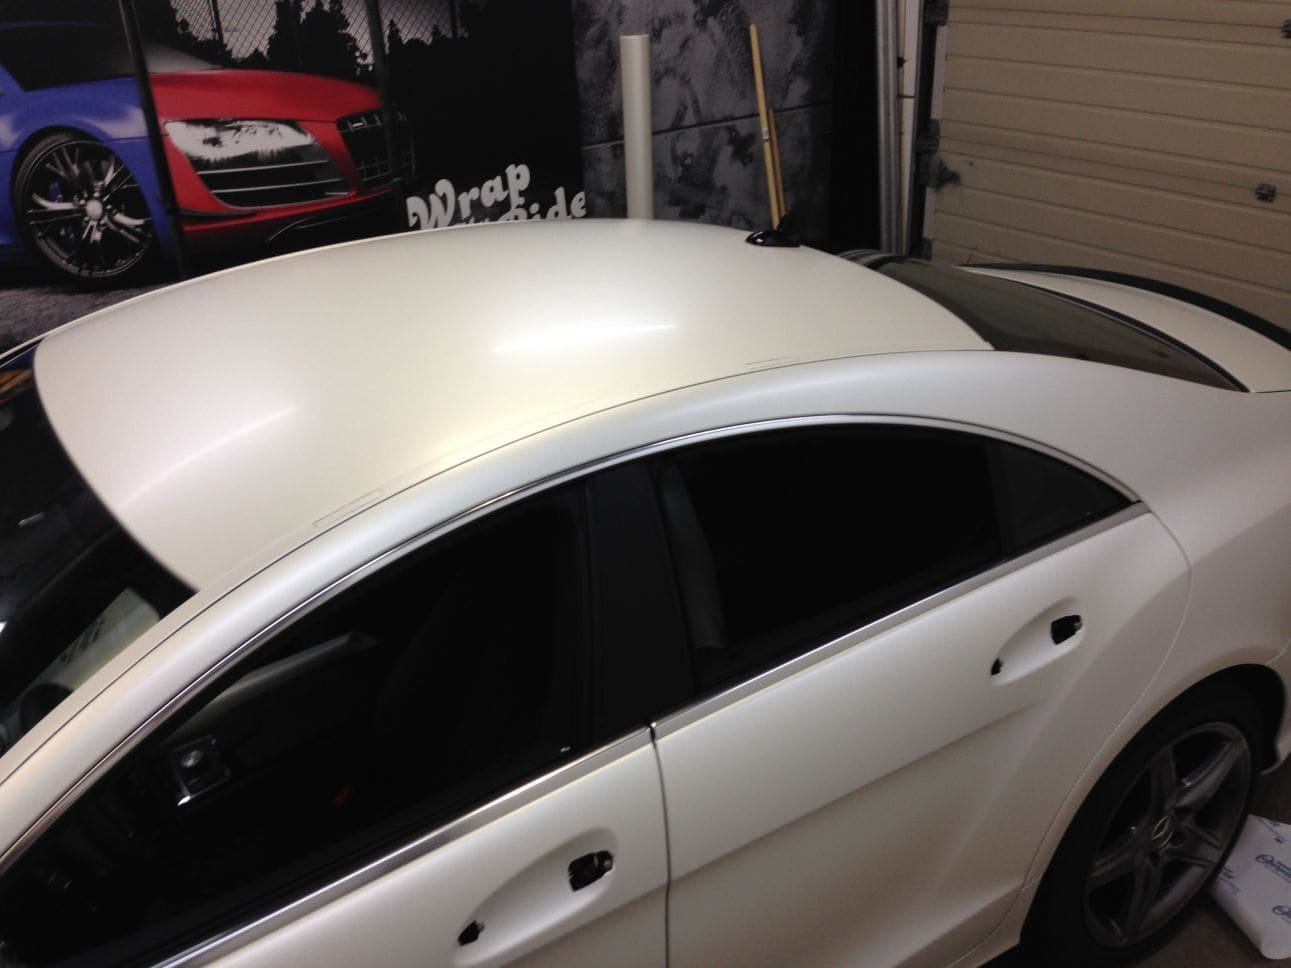 Mercedes CLS met White Satin Pearl Wrap, Carwrapping door Wrapmyride.nu Foto-nr:6195, ©2021